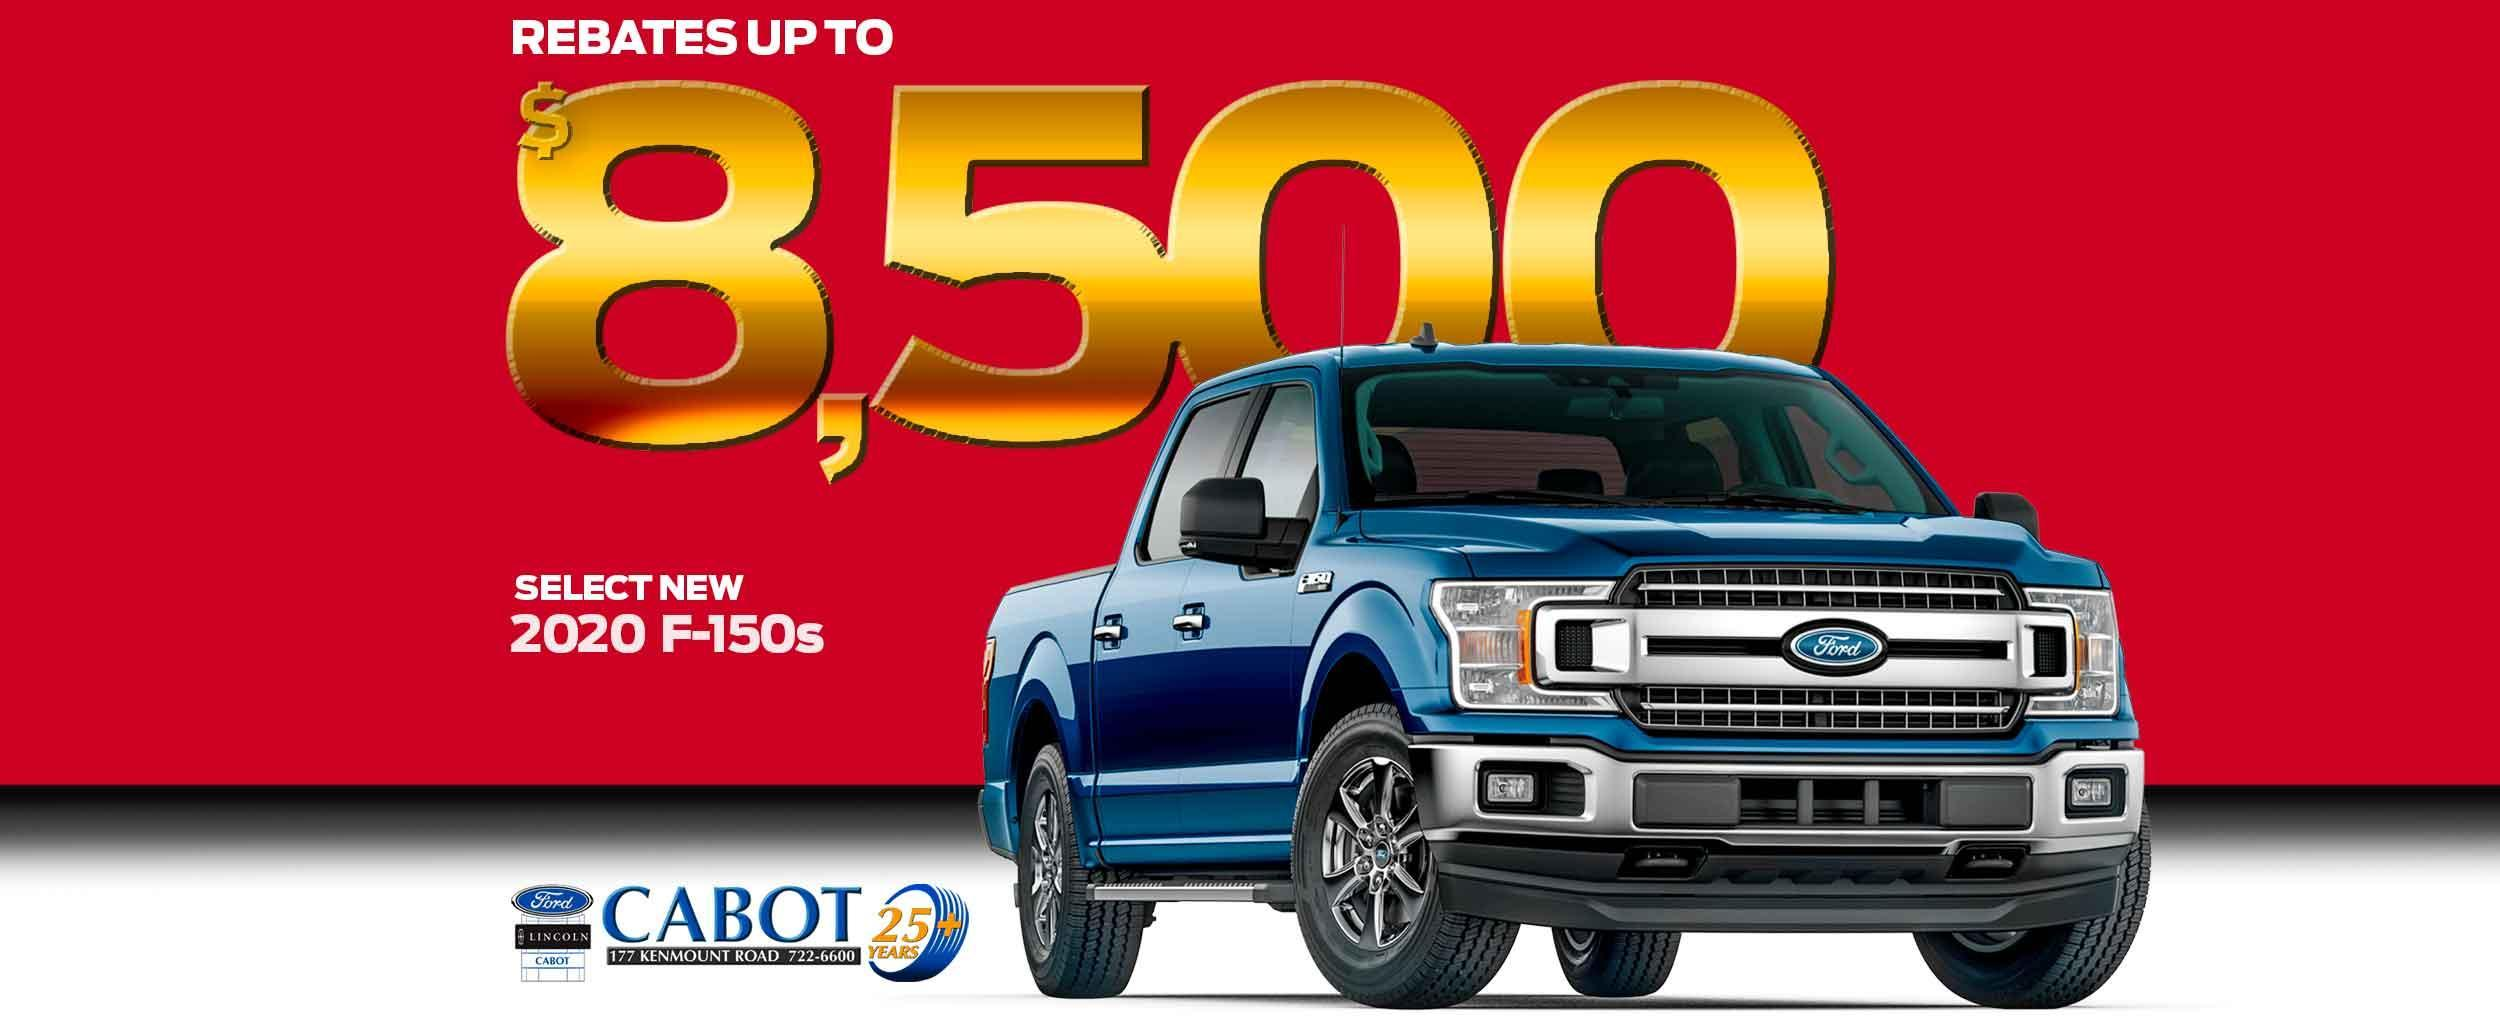 Get rebates of up to $8,500 on select new 2020 F-150 models!